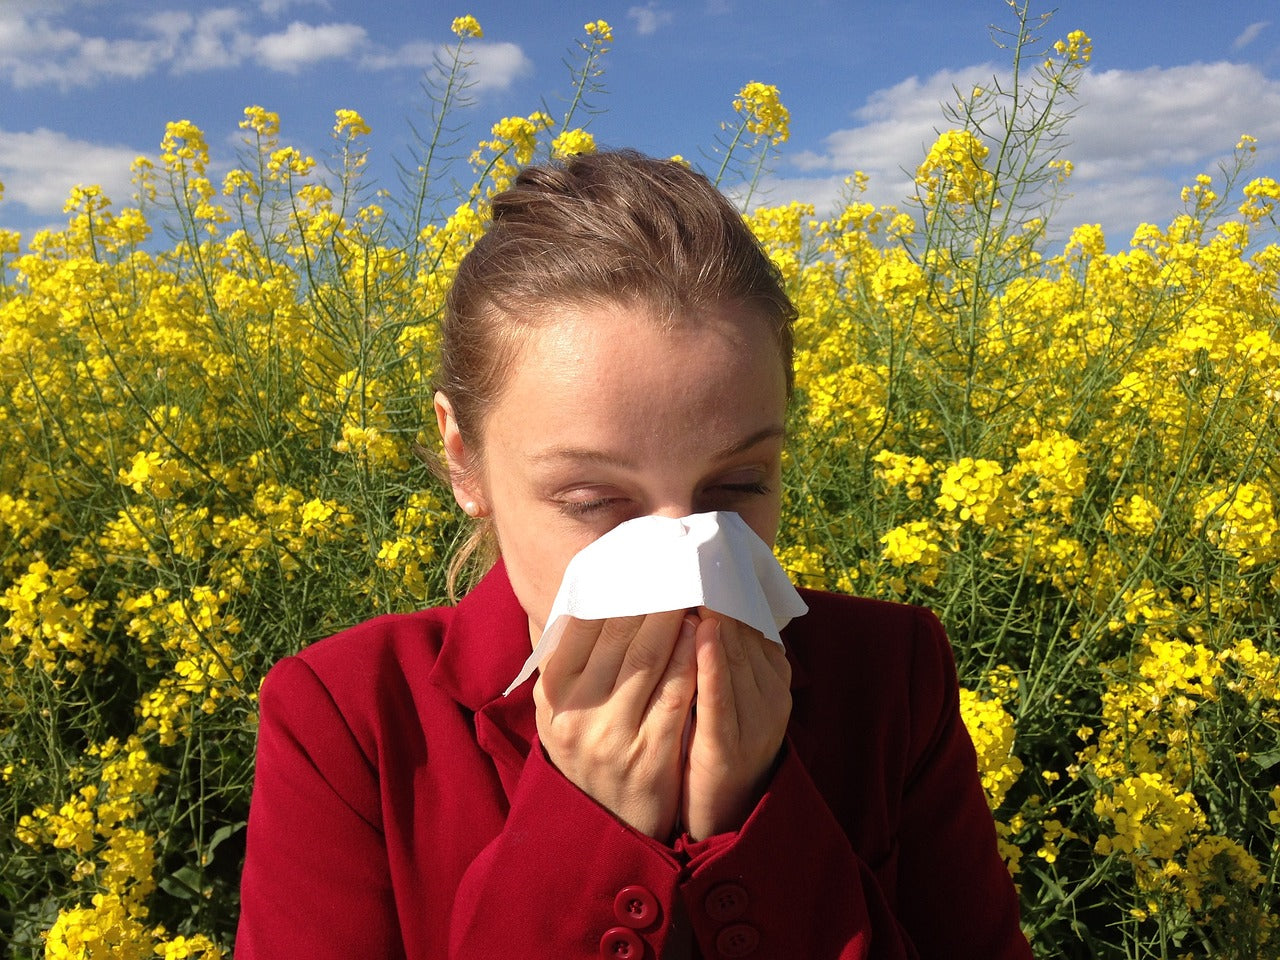 How To Stop Allergies - Naturally